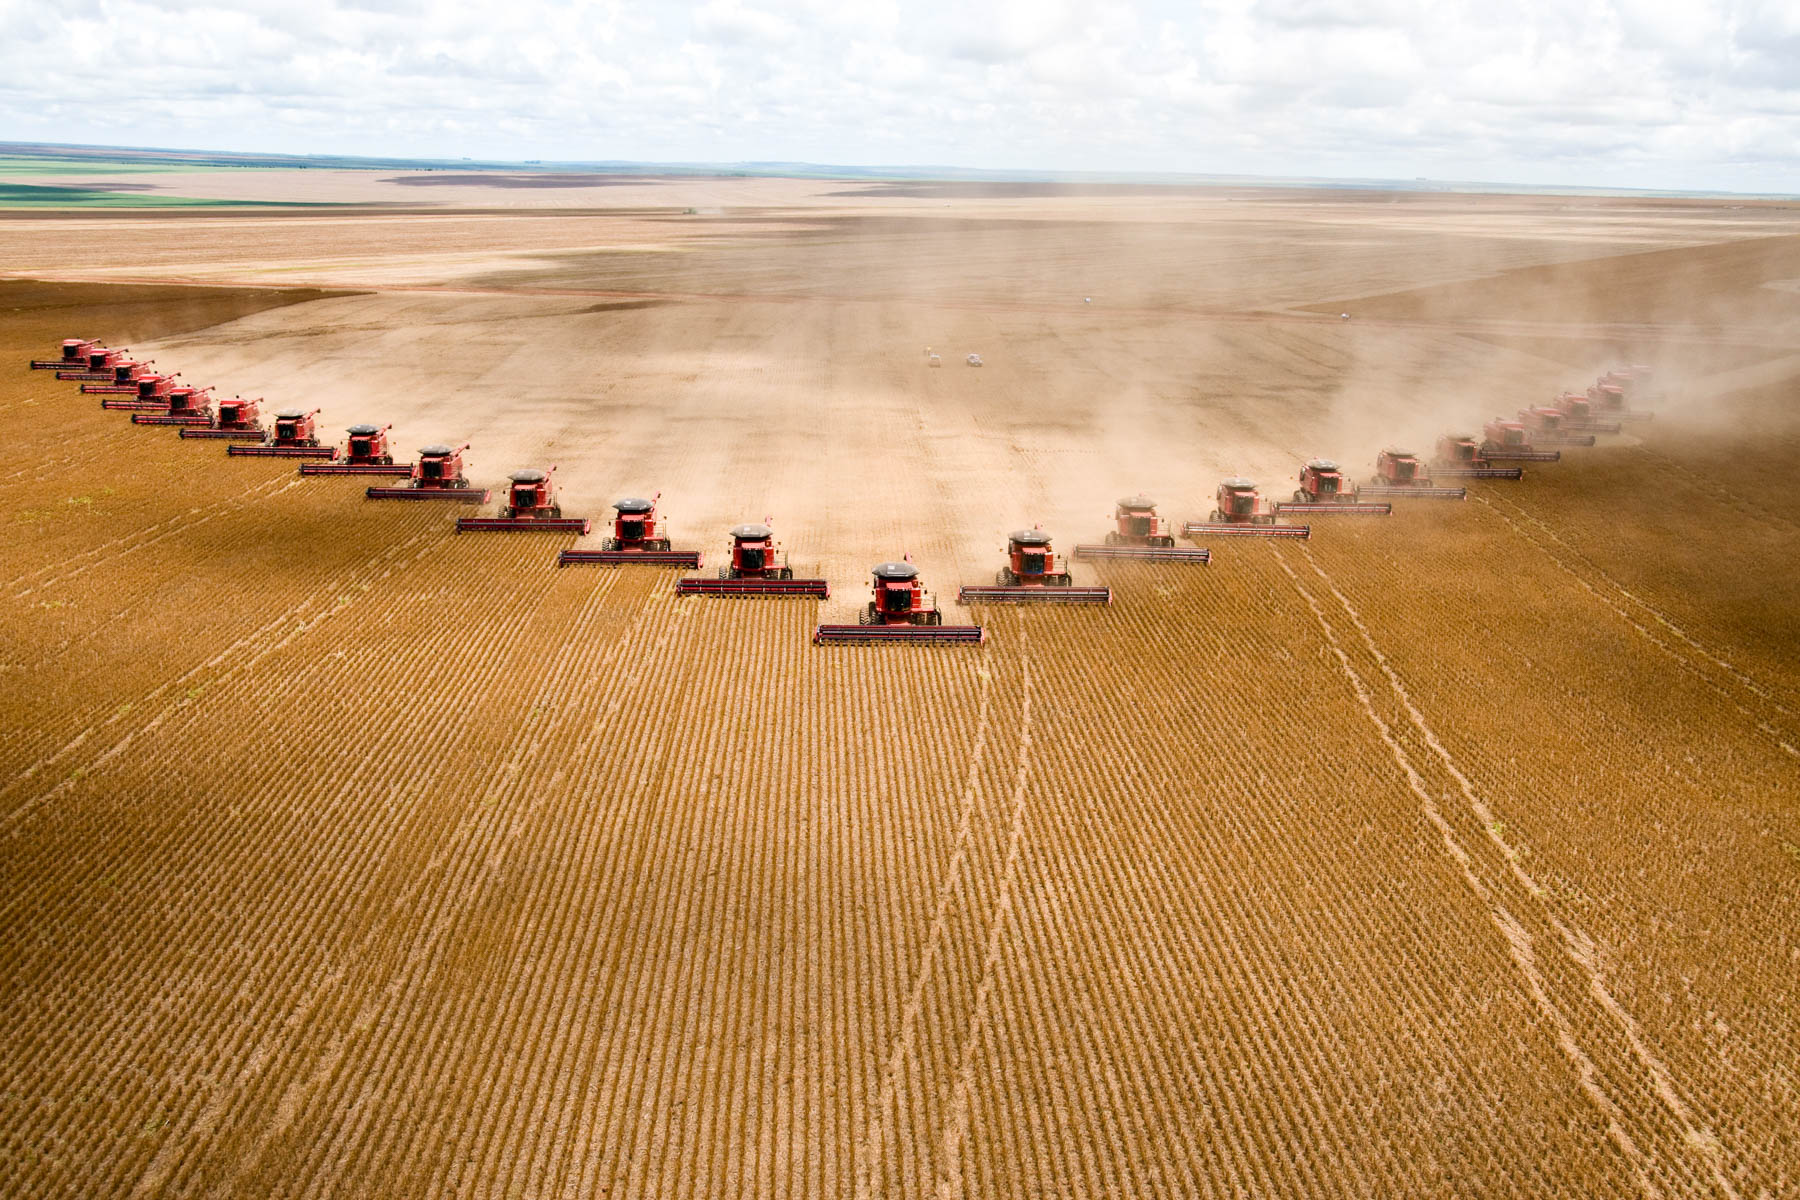 2 March 2008: Soybeans are harvested at Fartura Farm in Mato Grosso state. Brazil is the second-largest soy producer worldwide. (Photograph by Paulo Fridman/ Corbis via Getty Images)